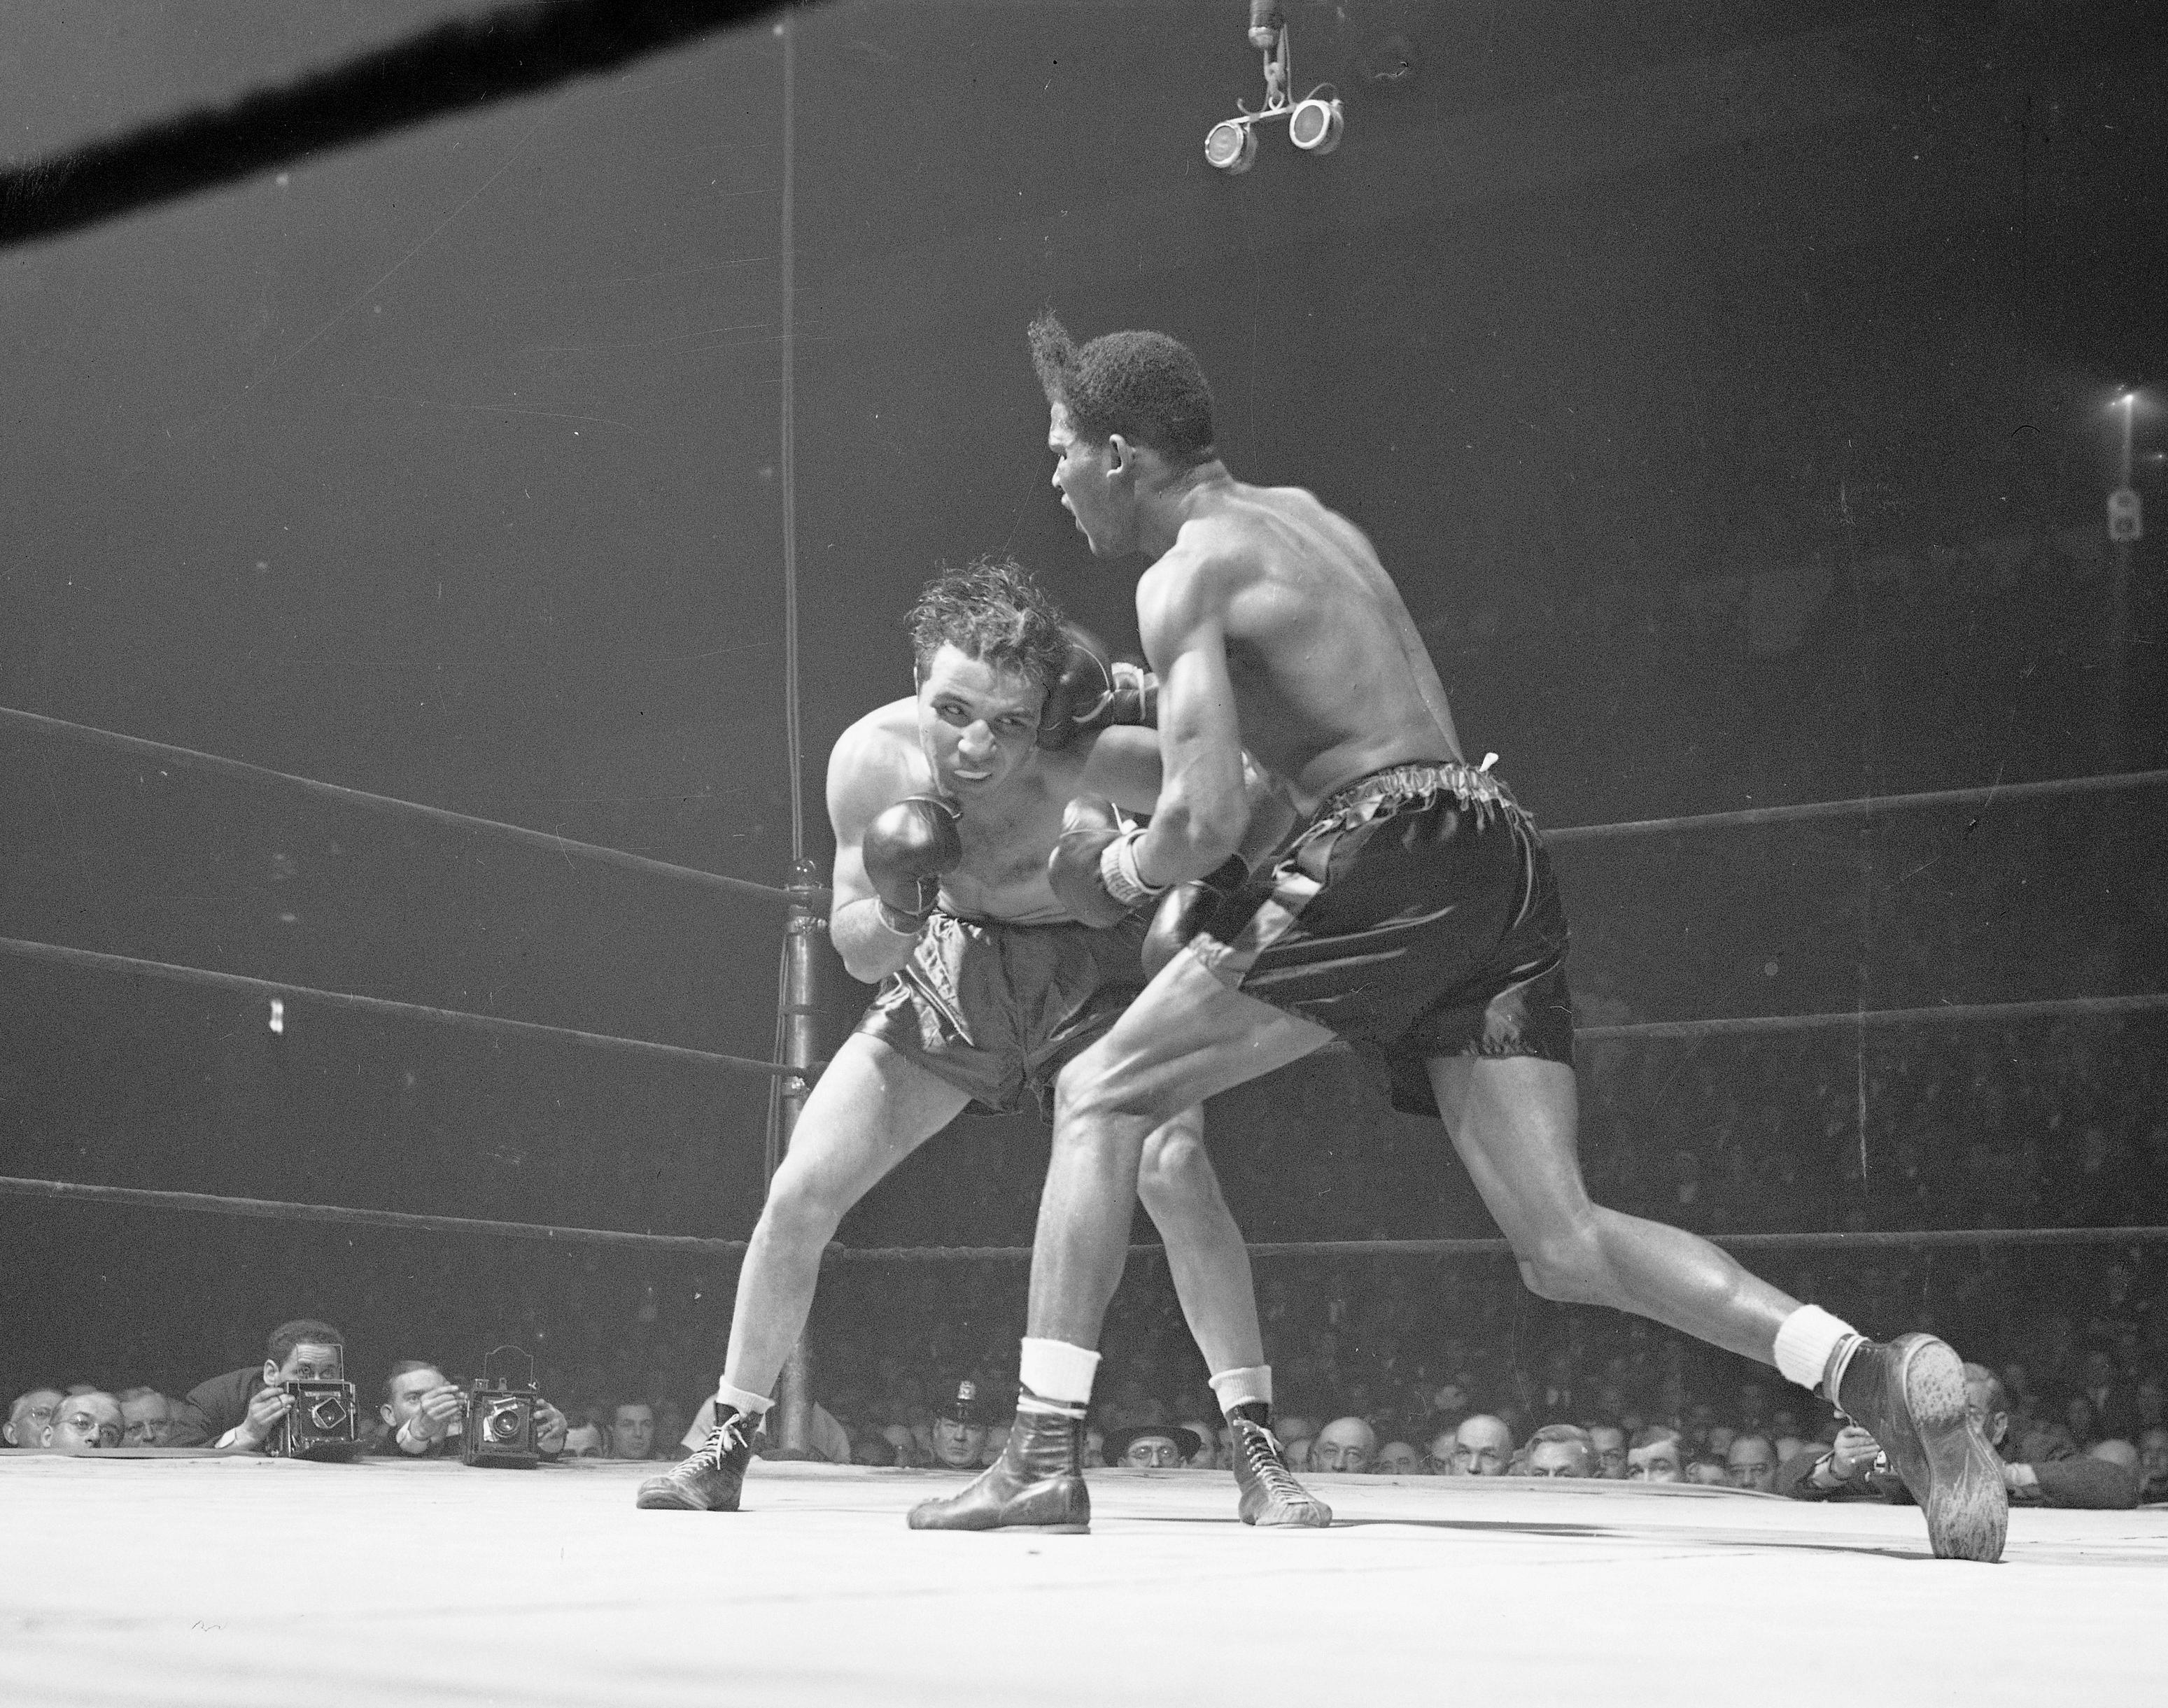 "FILE - In this Feb. 23, 1945, file photo, Jake LaMotta, left, of the Bronx borough of New York, and Ray Robinson of the Harlem section of New York, fight at Madison Square Garden in New York. Robinson won the fight on a decision. LaMotta fought Sugar Ray Robinson six times, handing Robinson his first defeat. LaMotta, whose life was depicted in the film ""Raging Bull,"" died Tuesday, Sept. 19, 2017, at a Miami-area hospital from complications of pneumonia. He was 95. (AP Photo/Matty Zimmerman, File)"